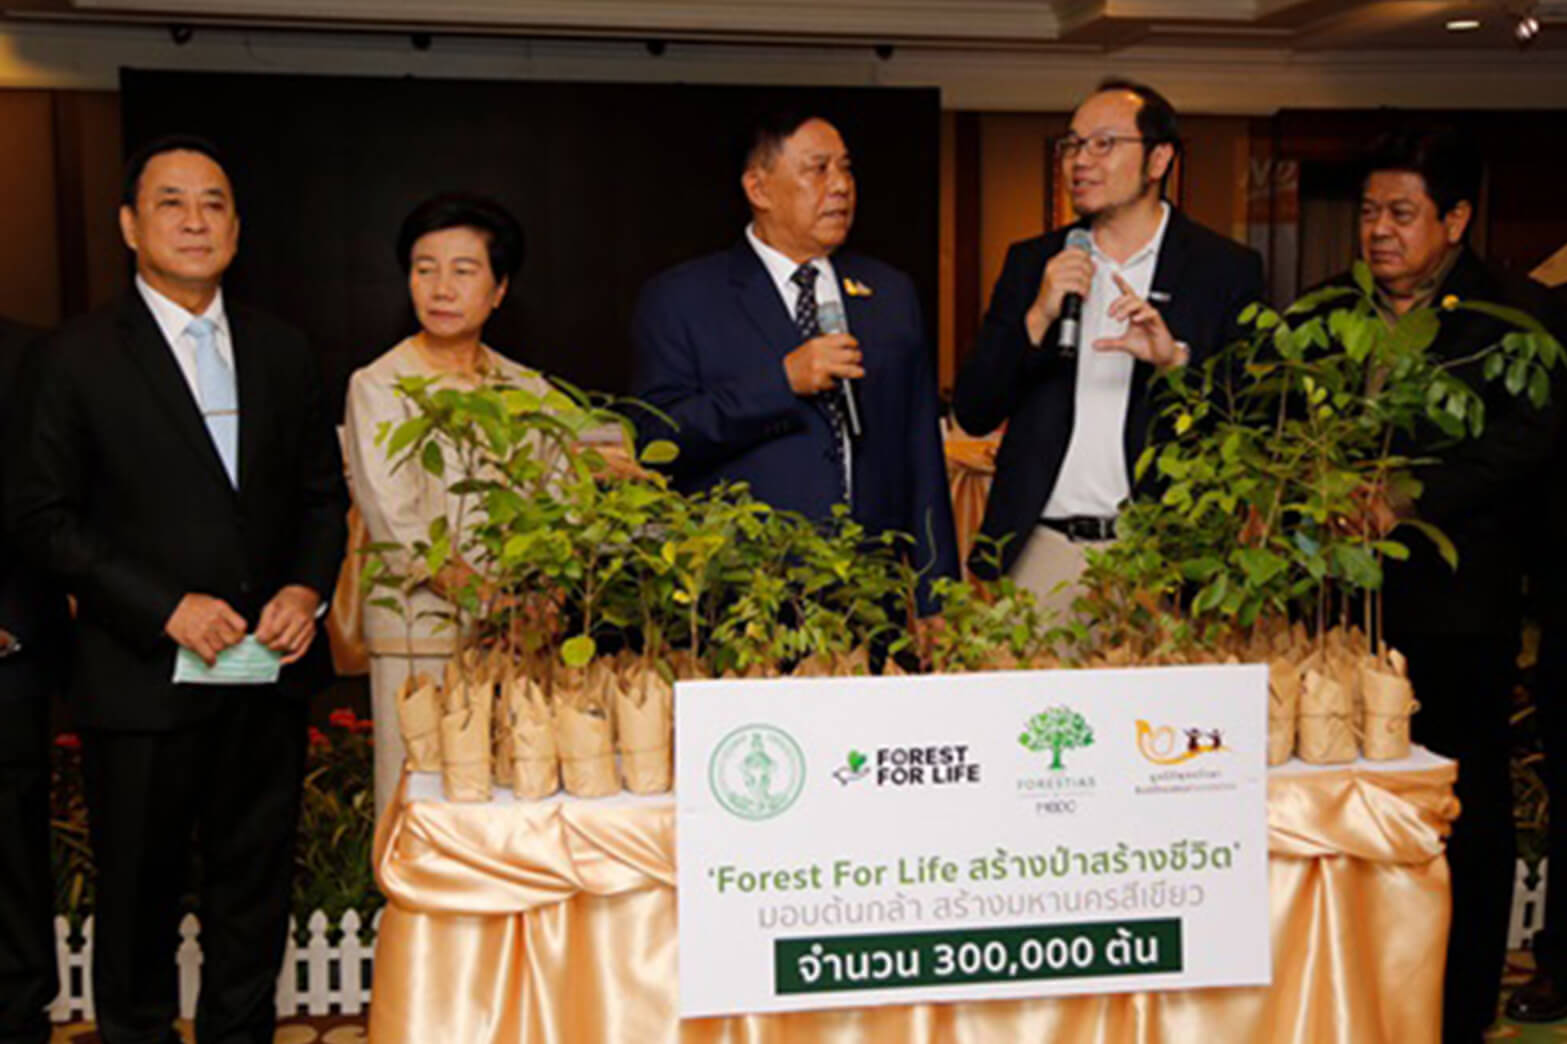 """Forest for Life"" Gives 300,000 Plants to Make Bangkok Green Forest for Life"